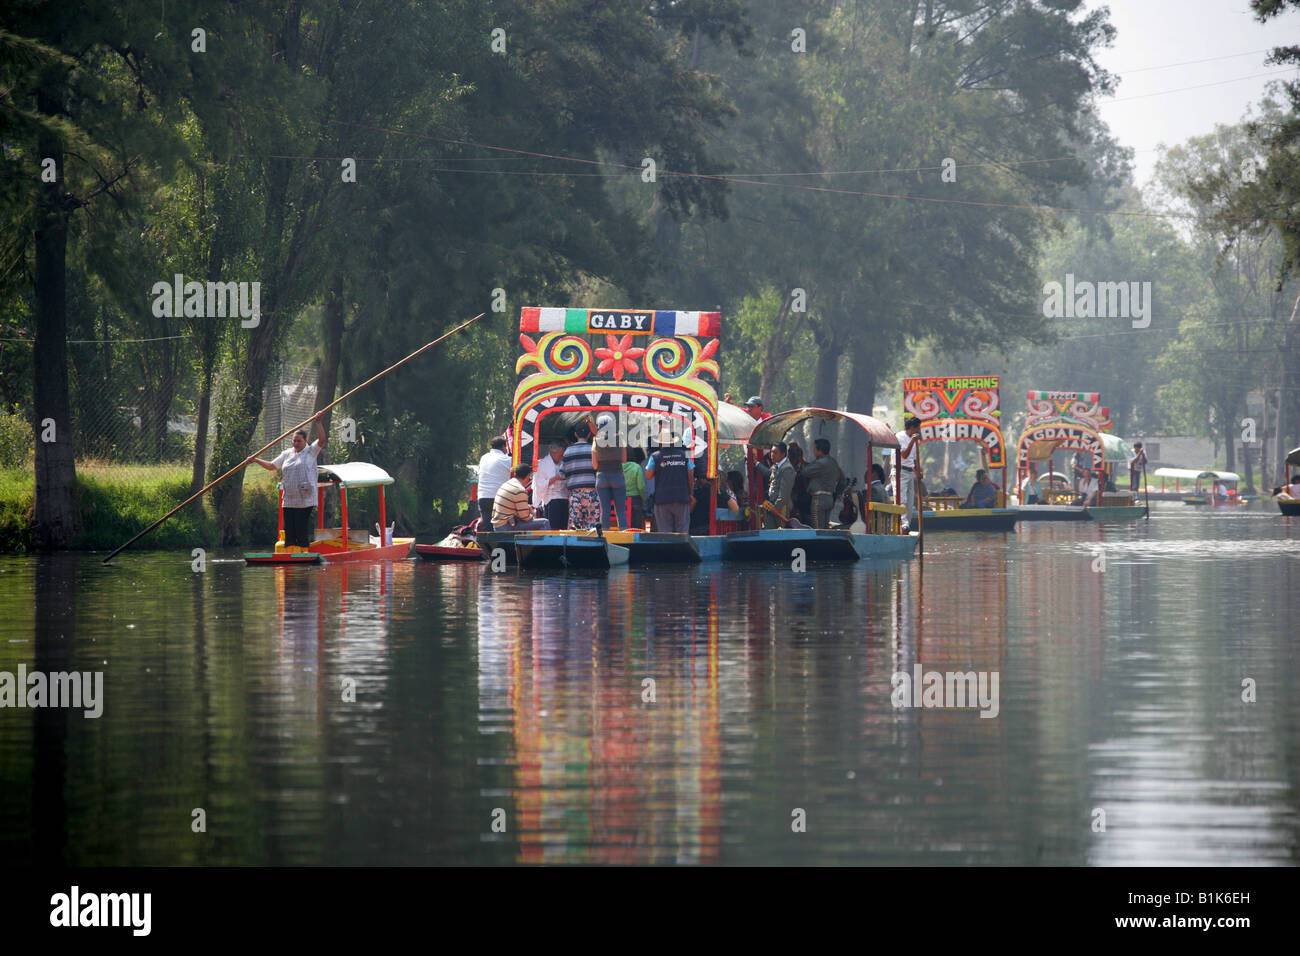 Boats On The Canals Of The Floating Gardens Of Xochimilco Mexico City Stock Photo Royalty Free